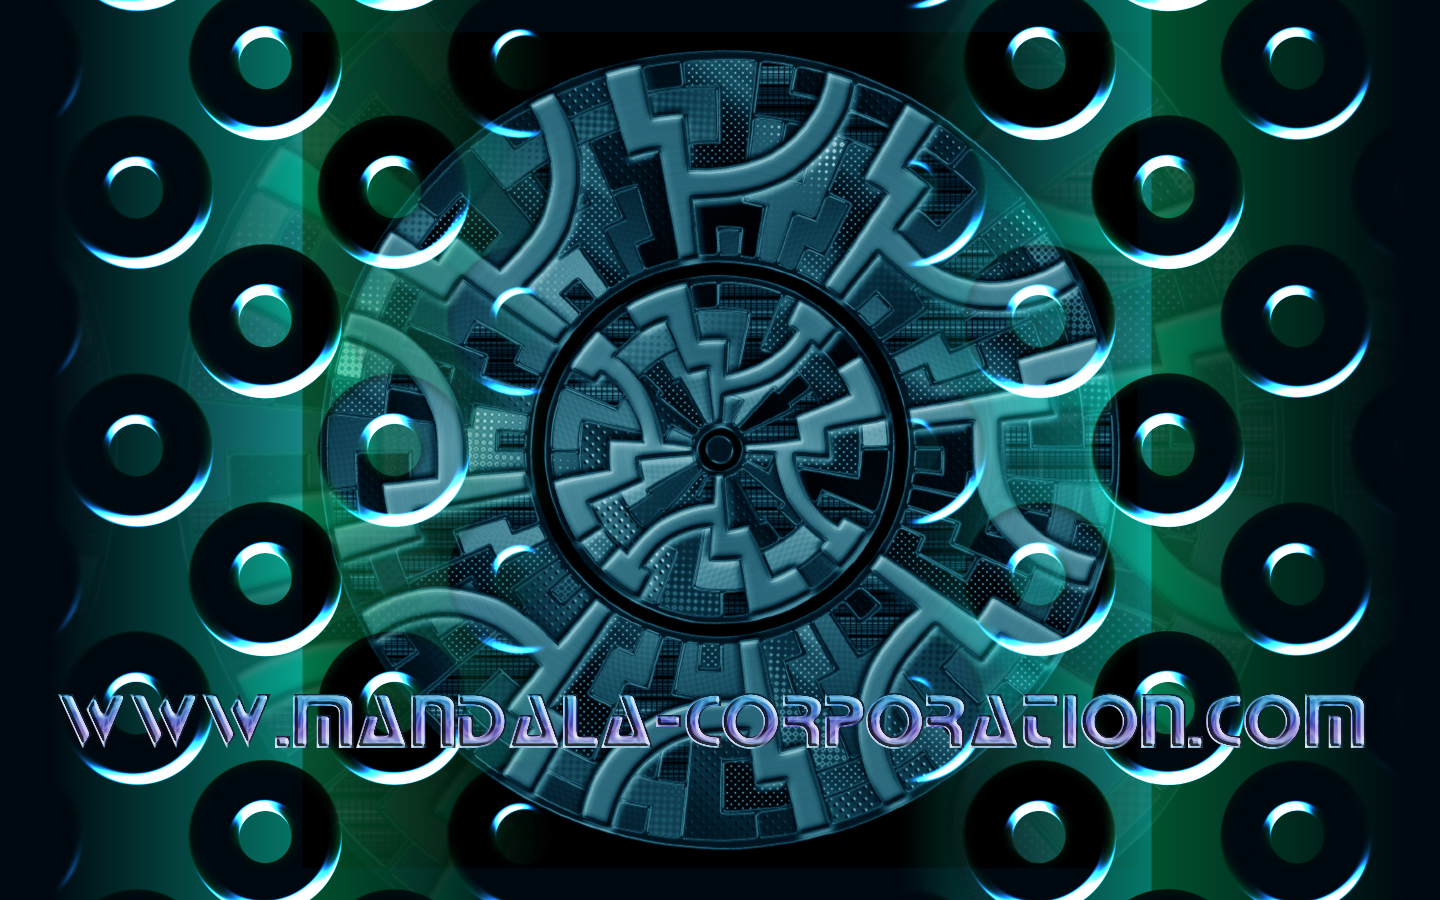 2013 mandala corporation all rights reserved 1440x900